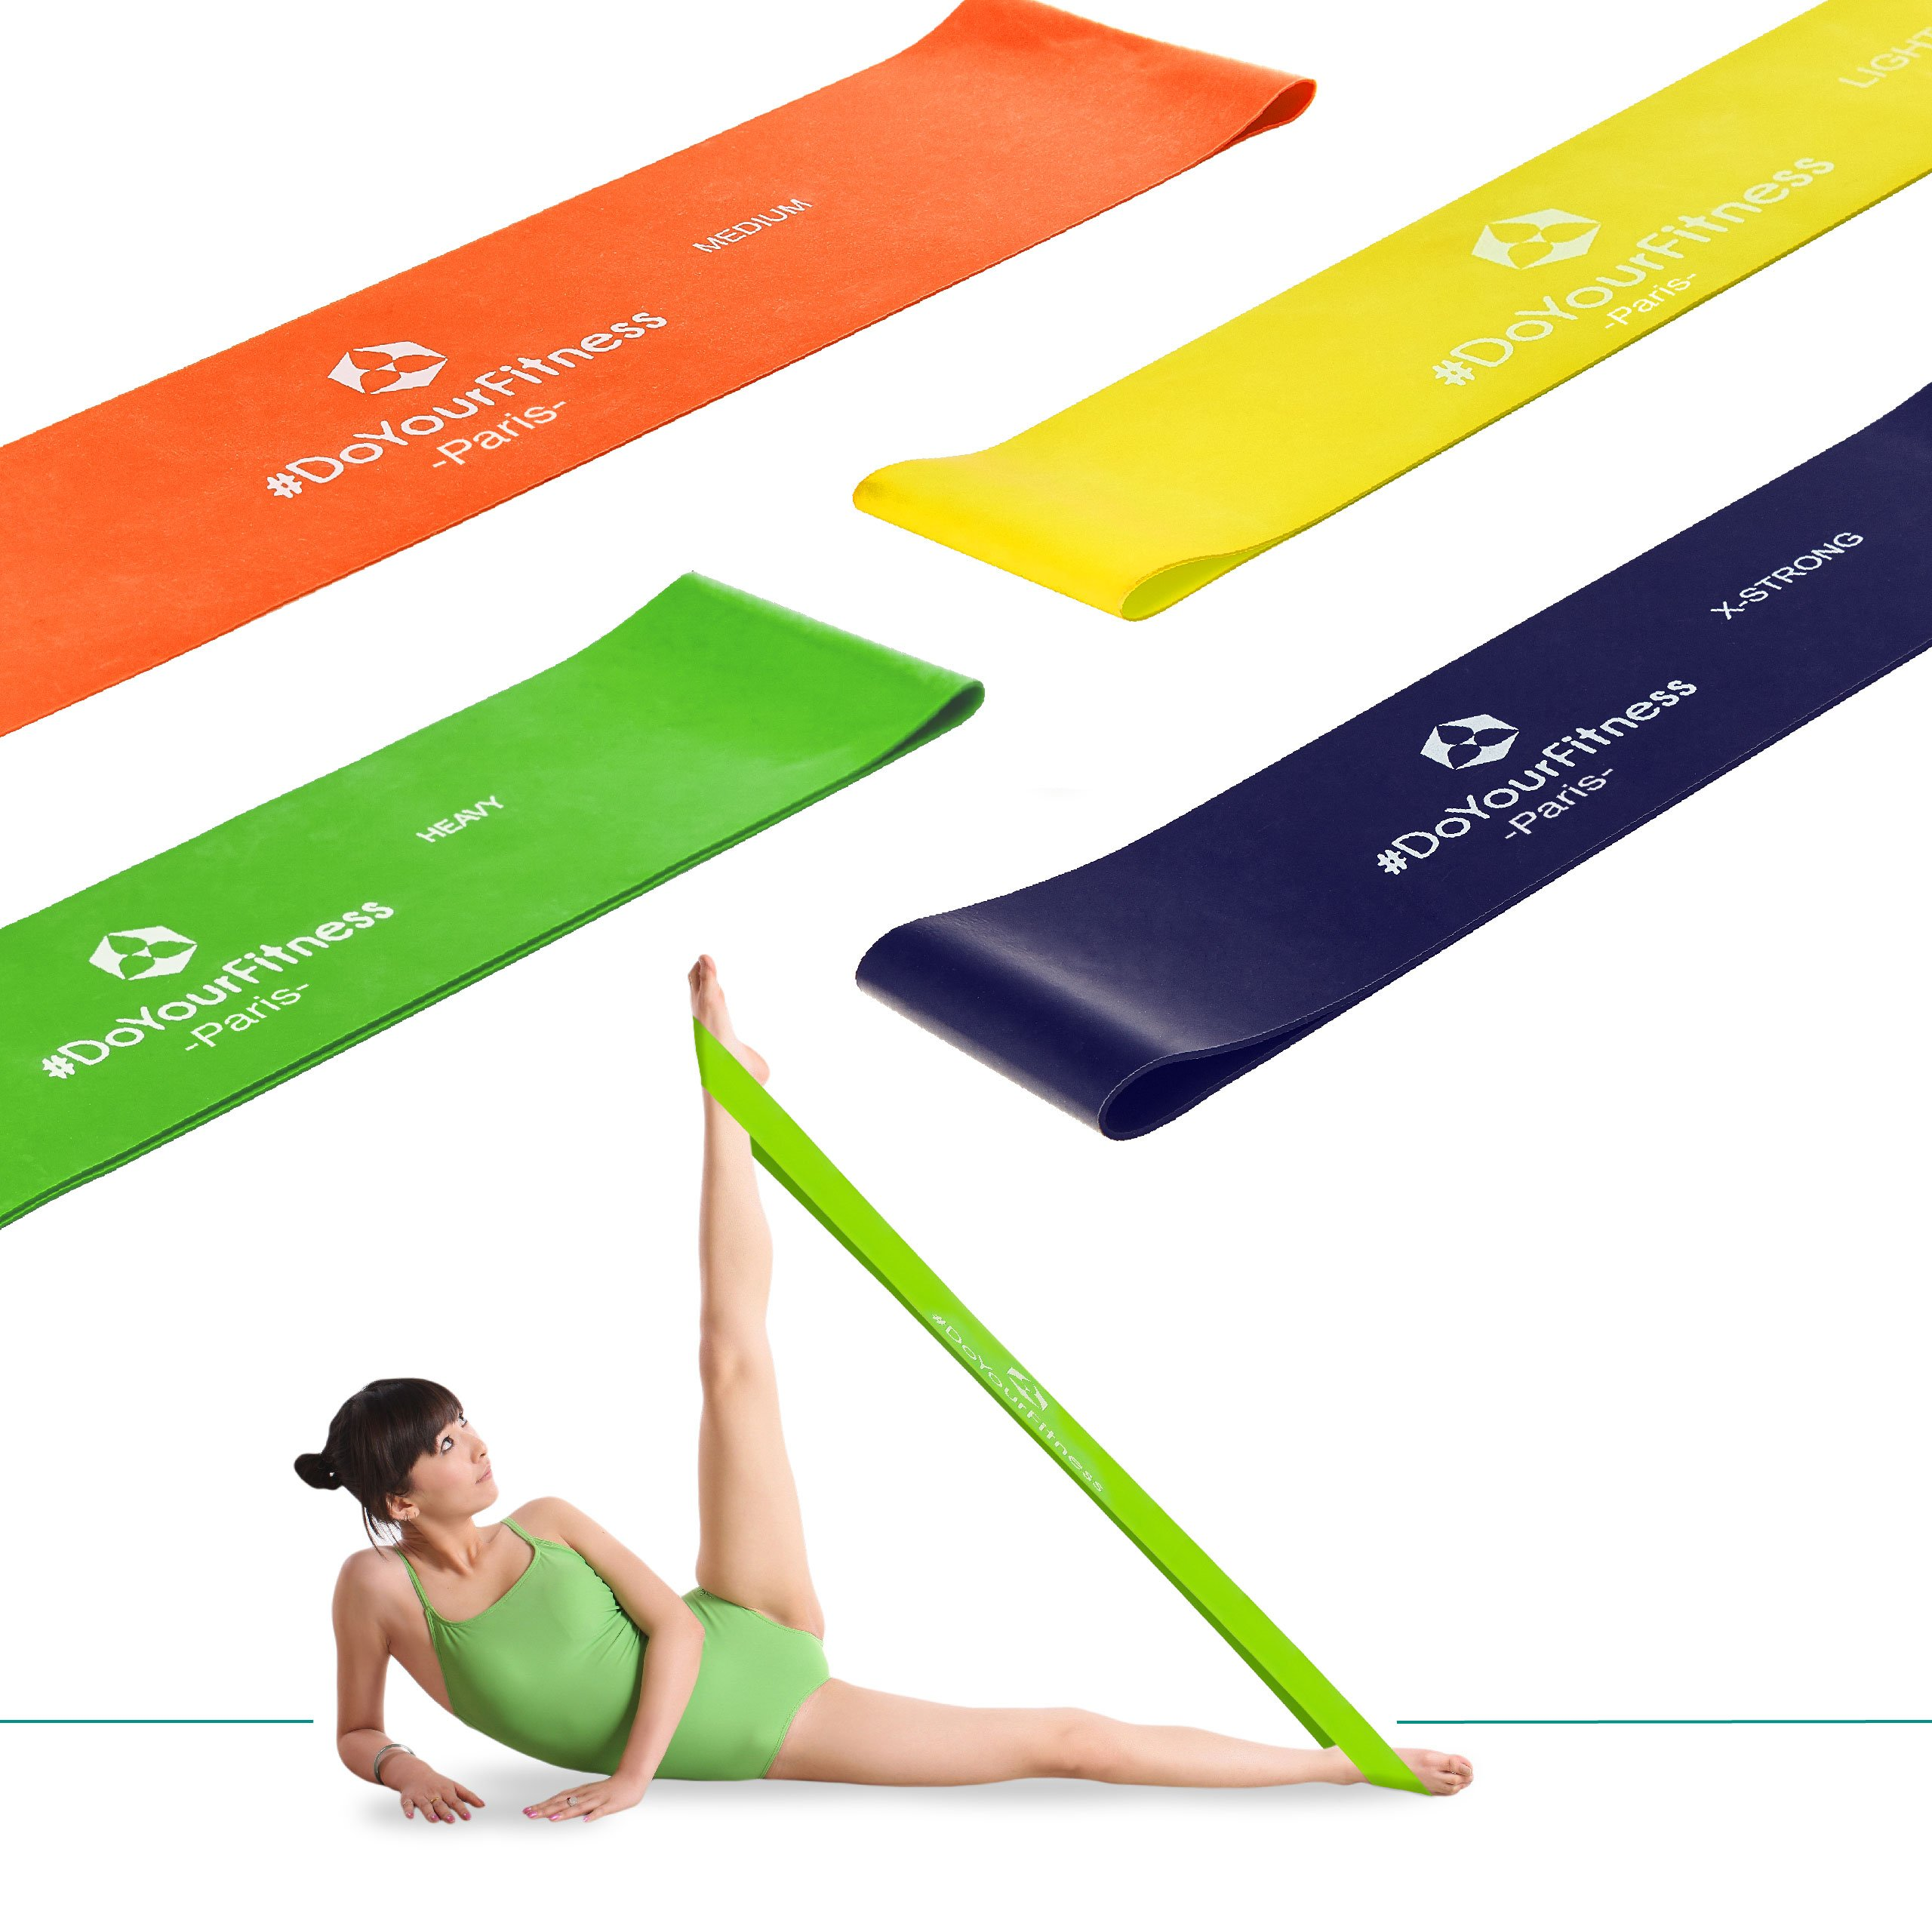 #DoYourFitness Set of 5 Loops Exercise Resistance Bands for Home Workout, Pilates, Yoga, Rehab, Physical Therapy with Carry Bag